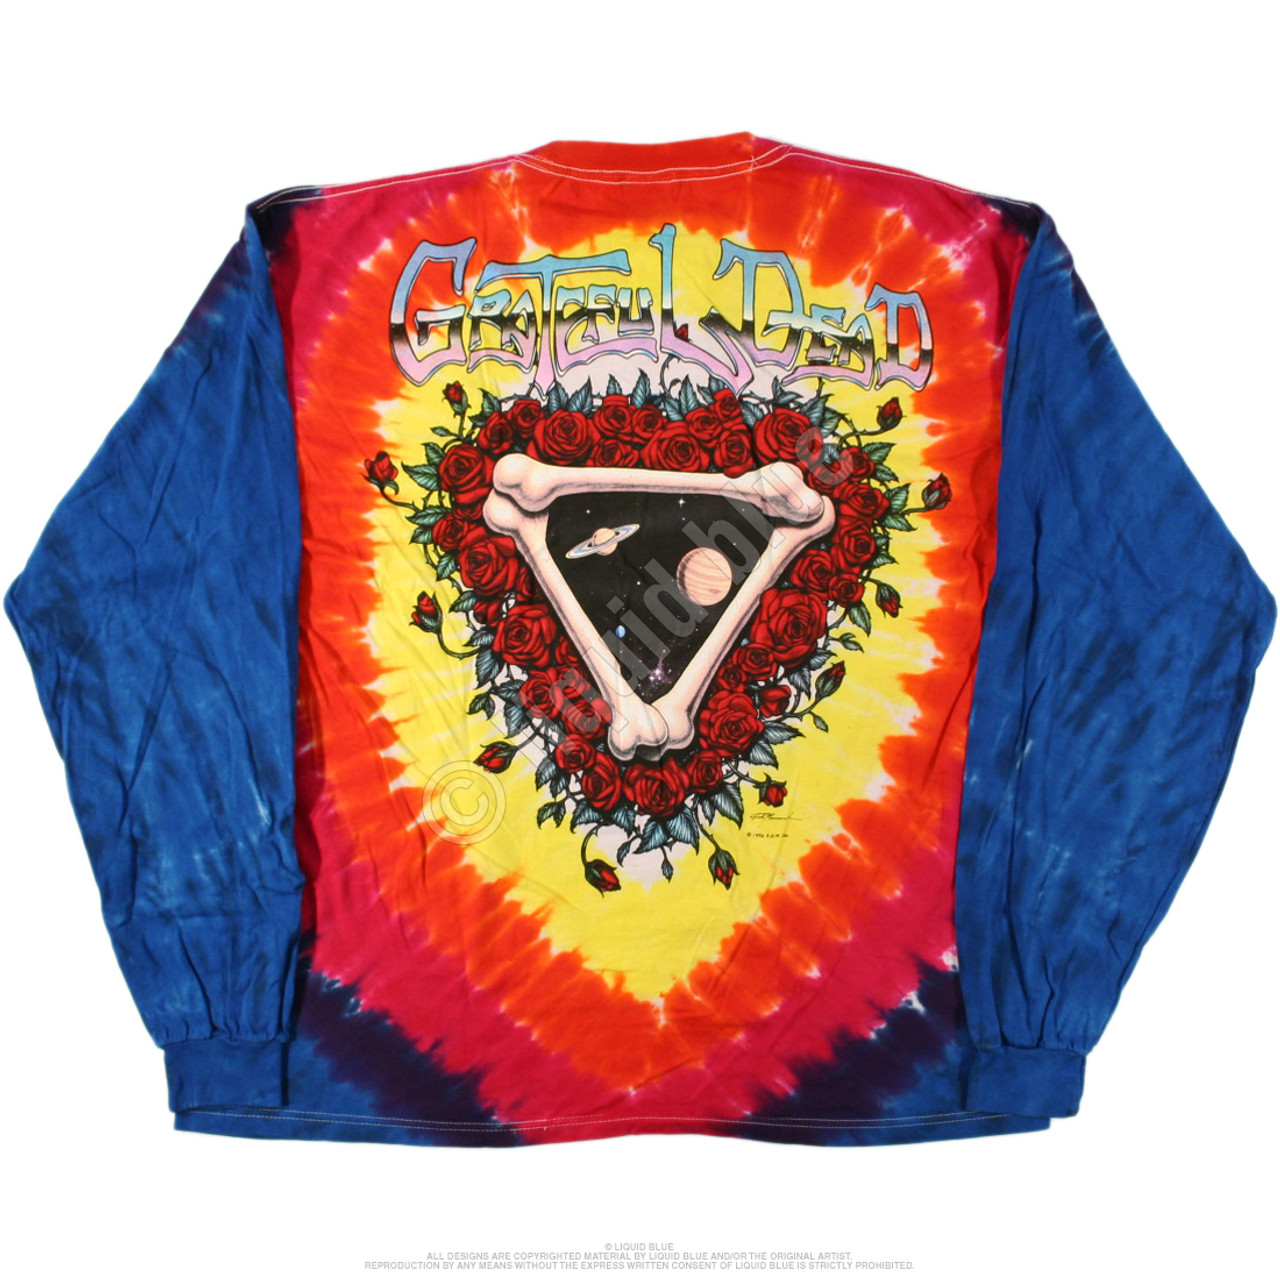 New GRATEFUL DEAD Space Your Face Long Sleeve Tie Dye T Shirt